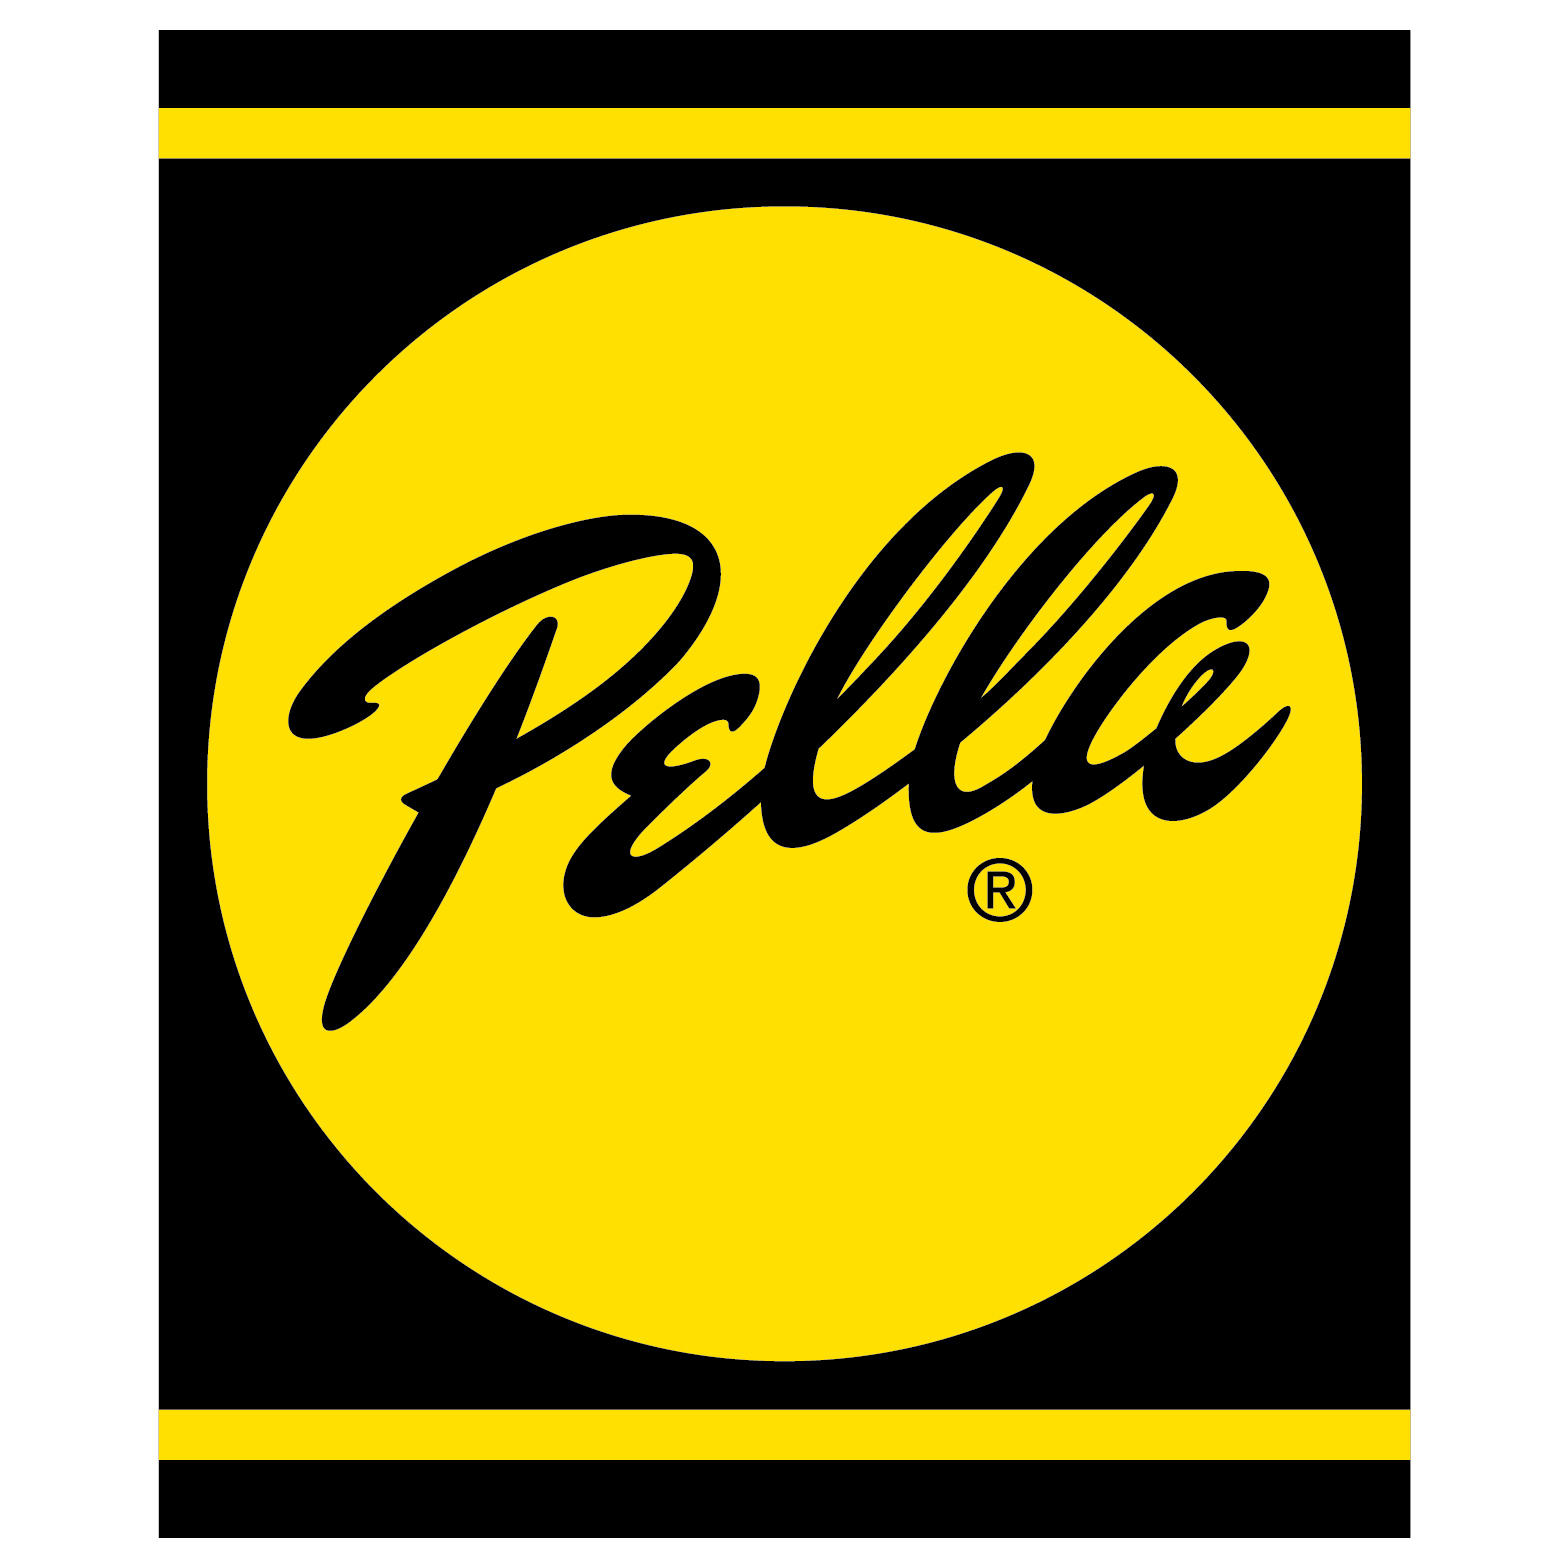 Pella Windows and Doors of Falls Church - Falls Church, VA - Windows & Door Contractors